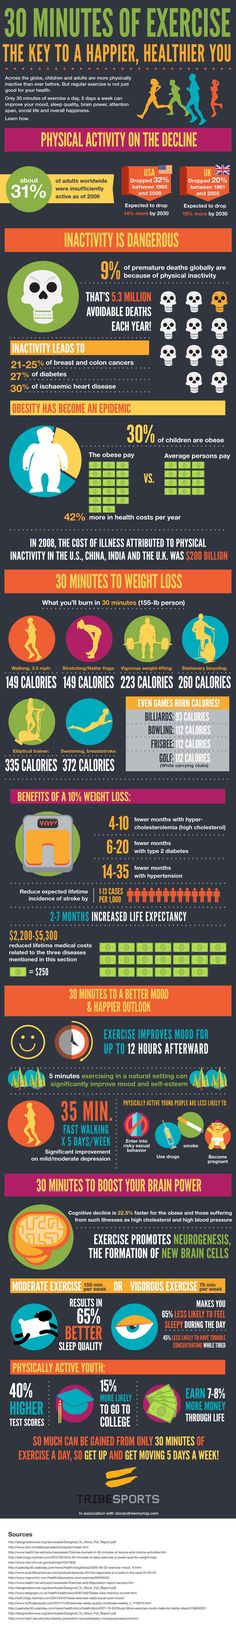 30 minutes of exercise to stay healthy!